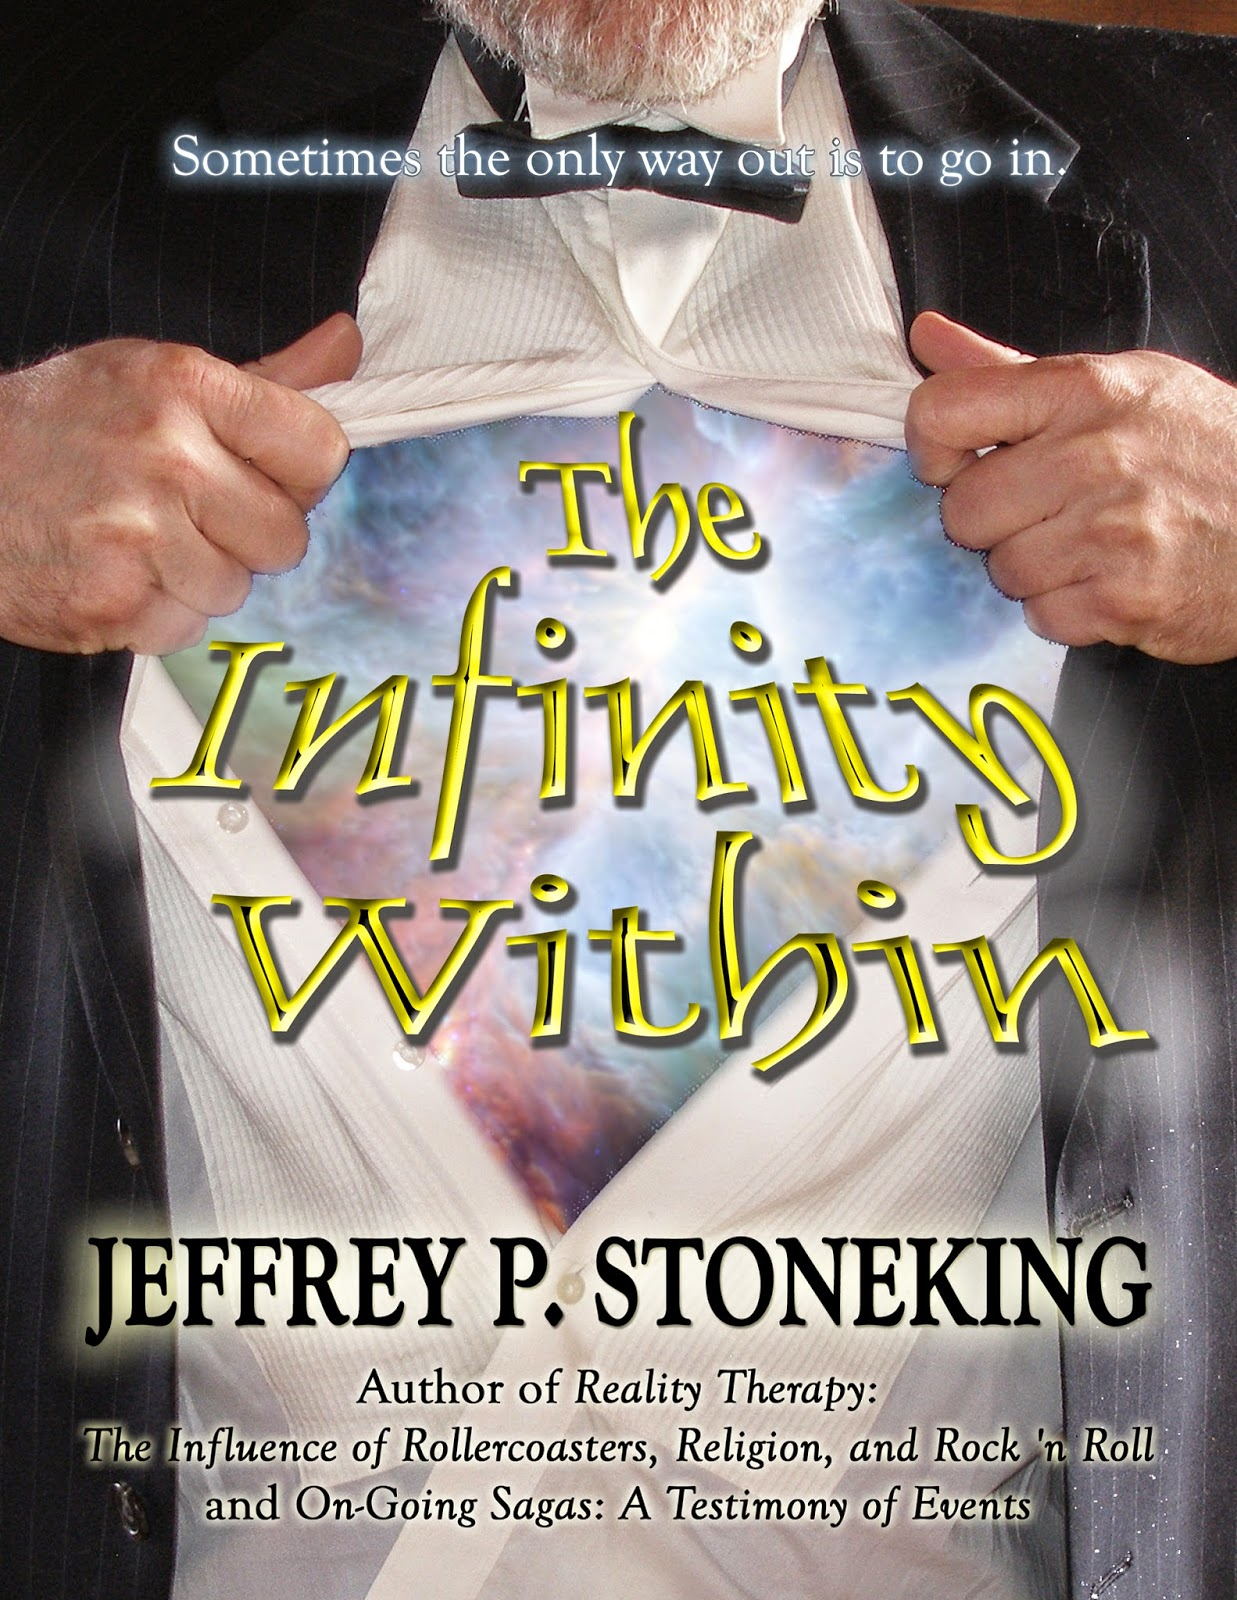 http://www.amazon.com/The-Infinity-Within-Jeffrey-Stoneking-ebook/dp/B00JFHST3E/ref=sr_1_1?ie=UTF8&qid=1396900941&sr=8-1&keywords=stoneking+kindle